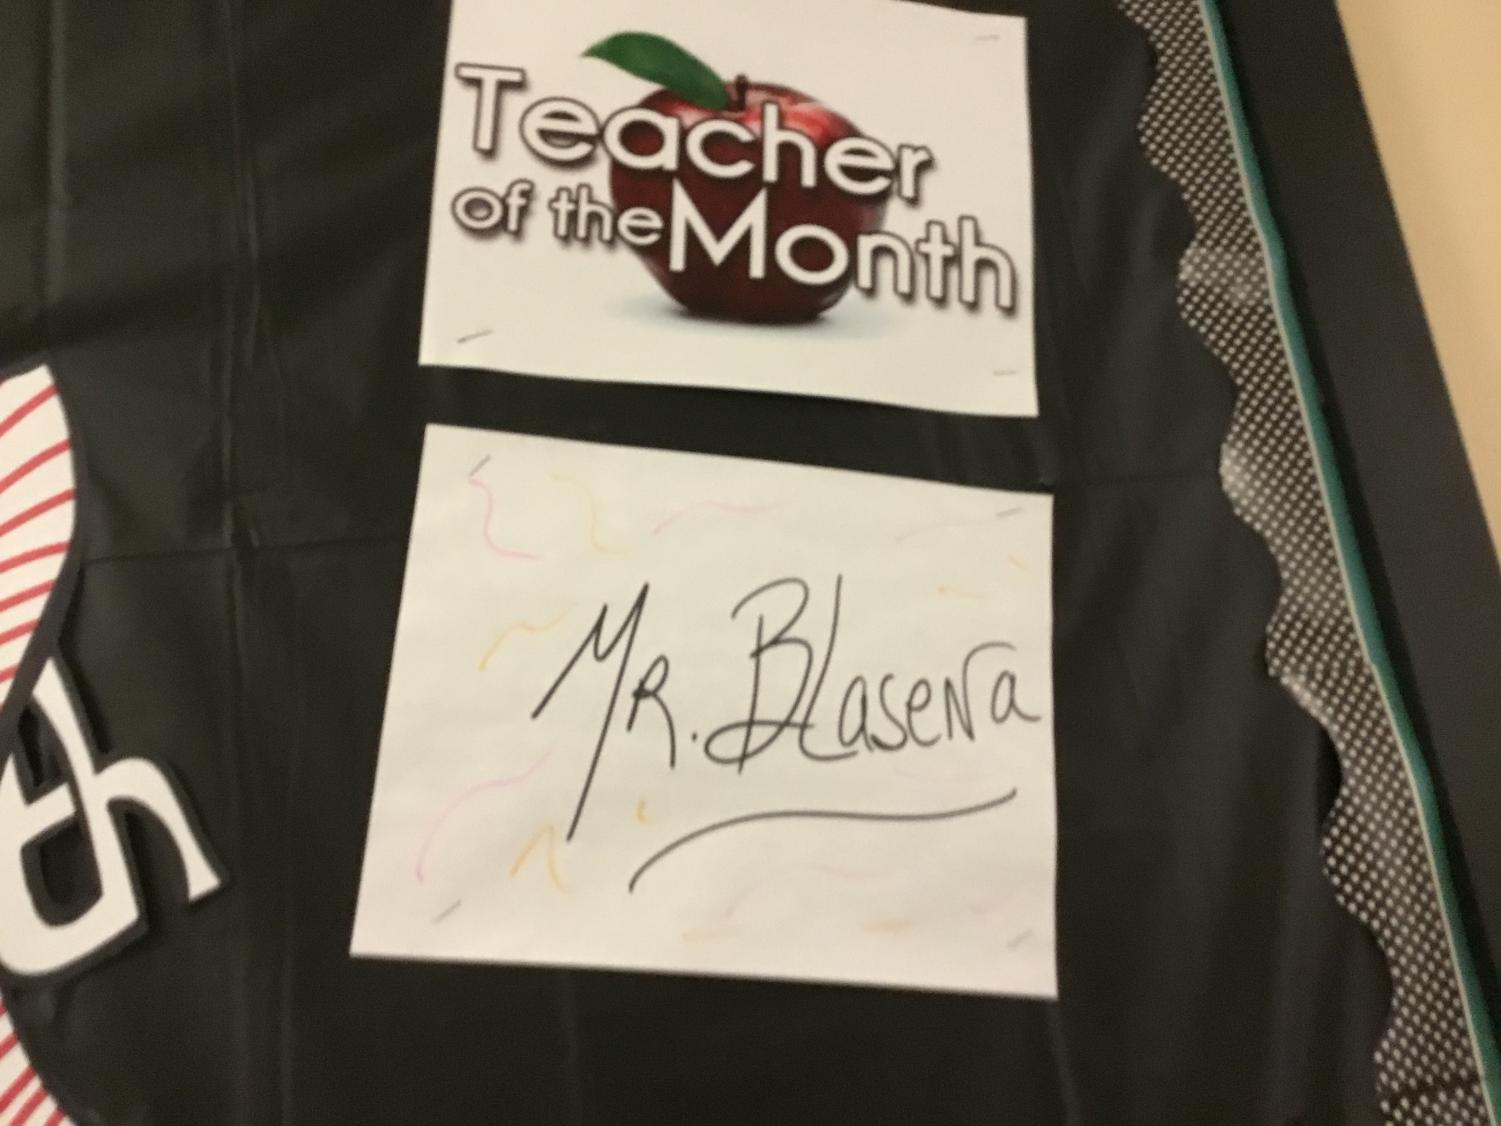 Congratulations to Mr. Blasena on winning teacher of the month